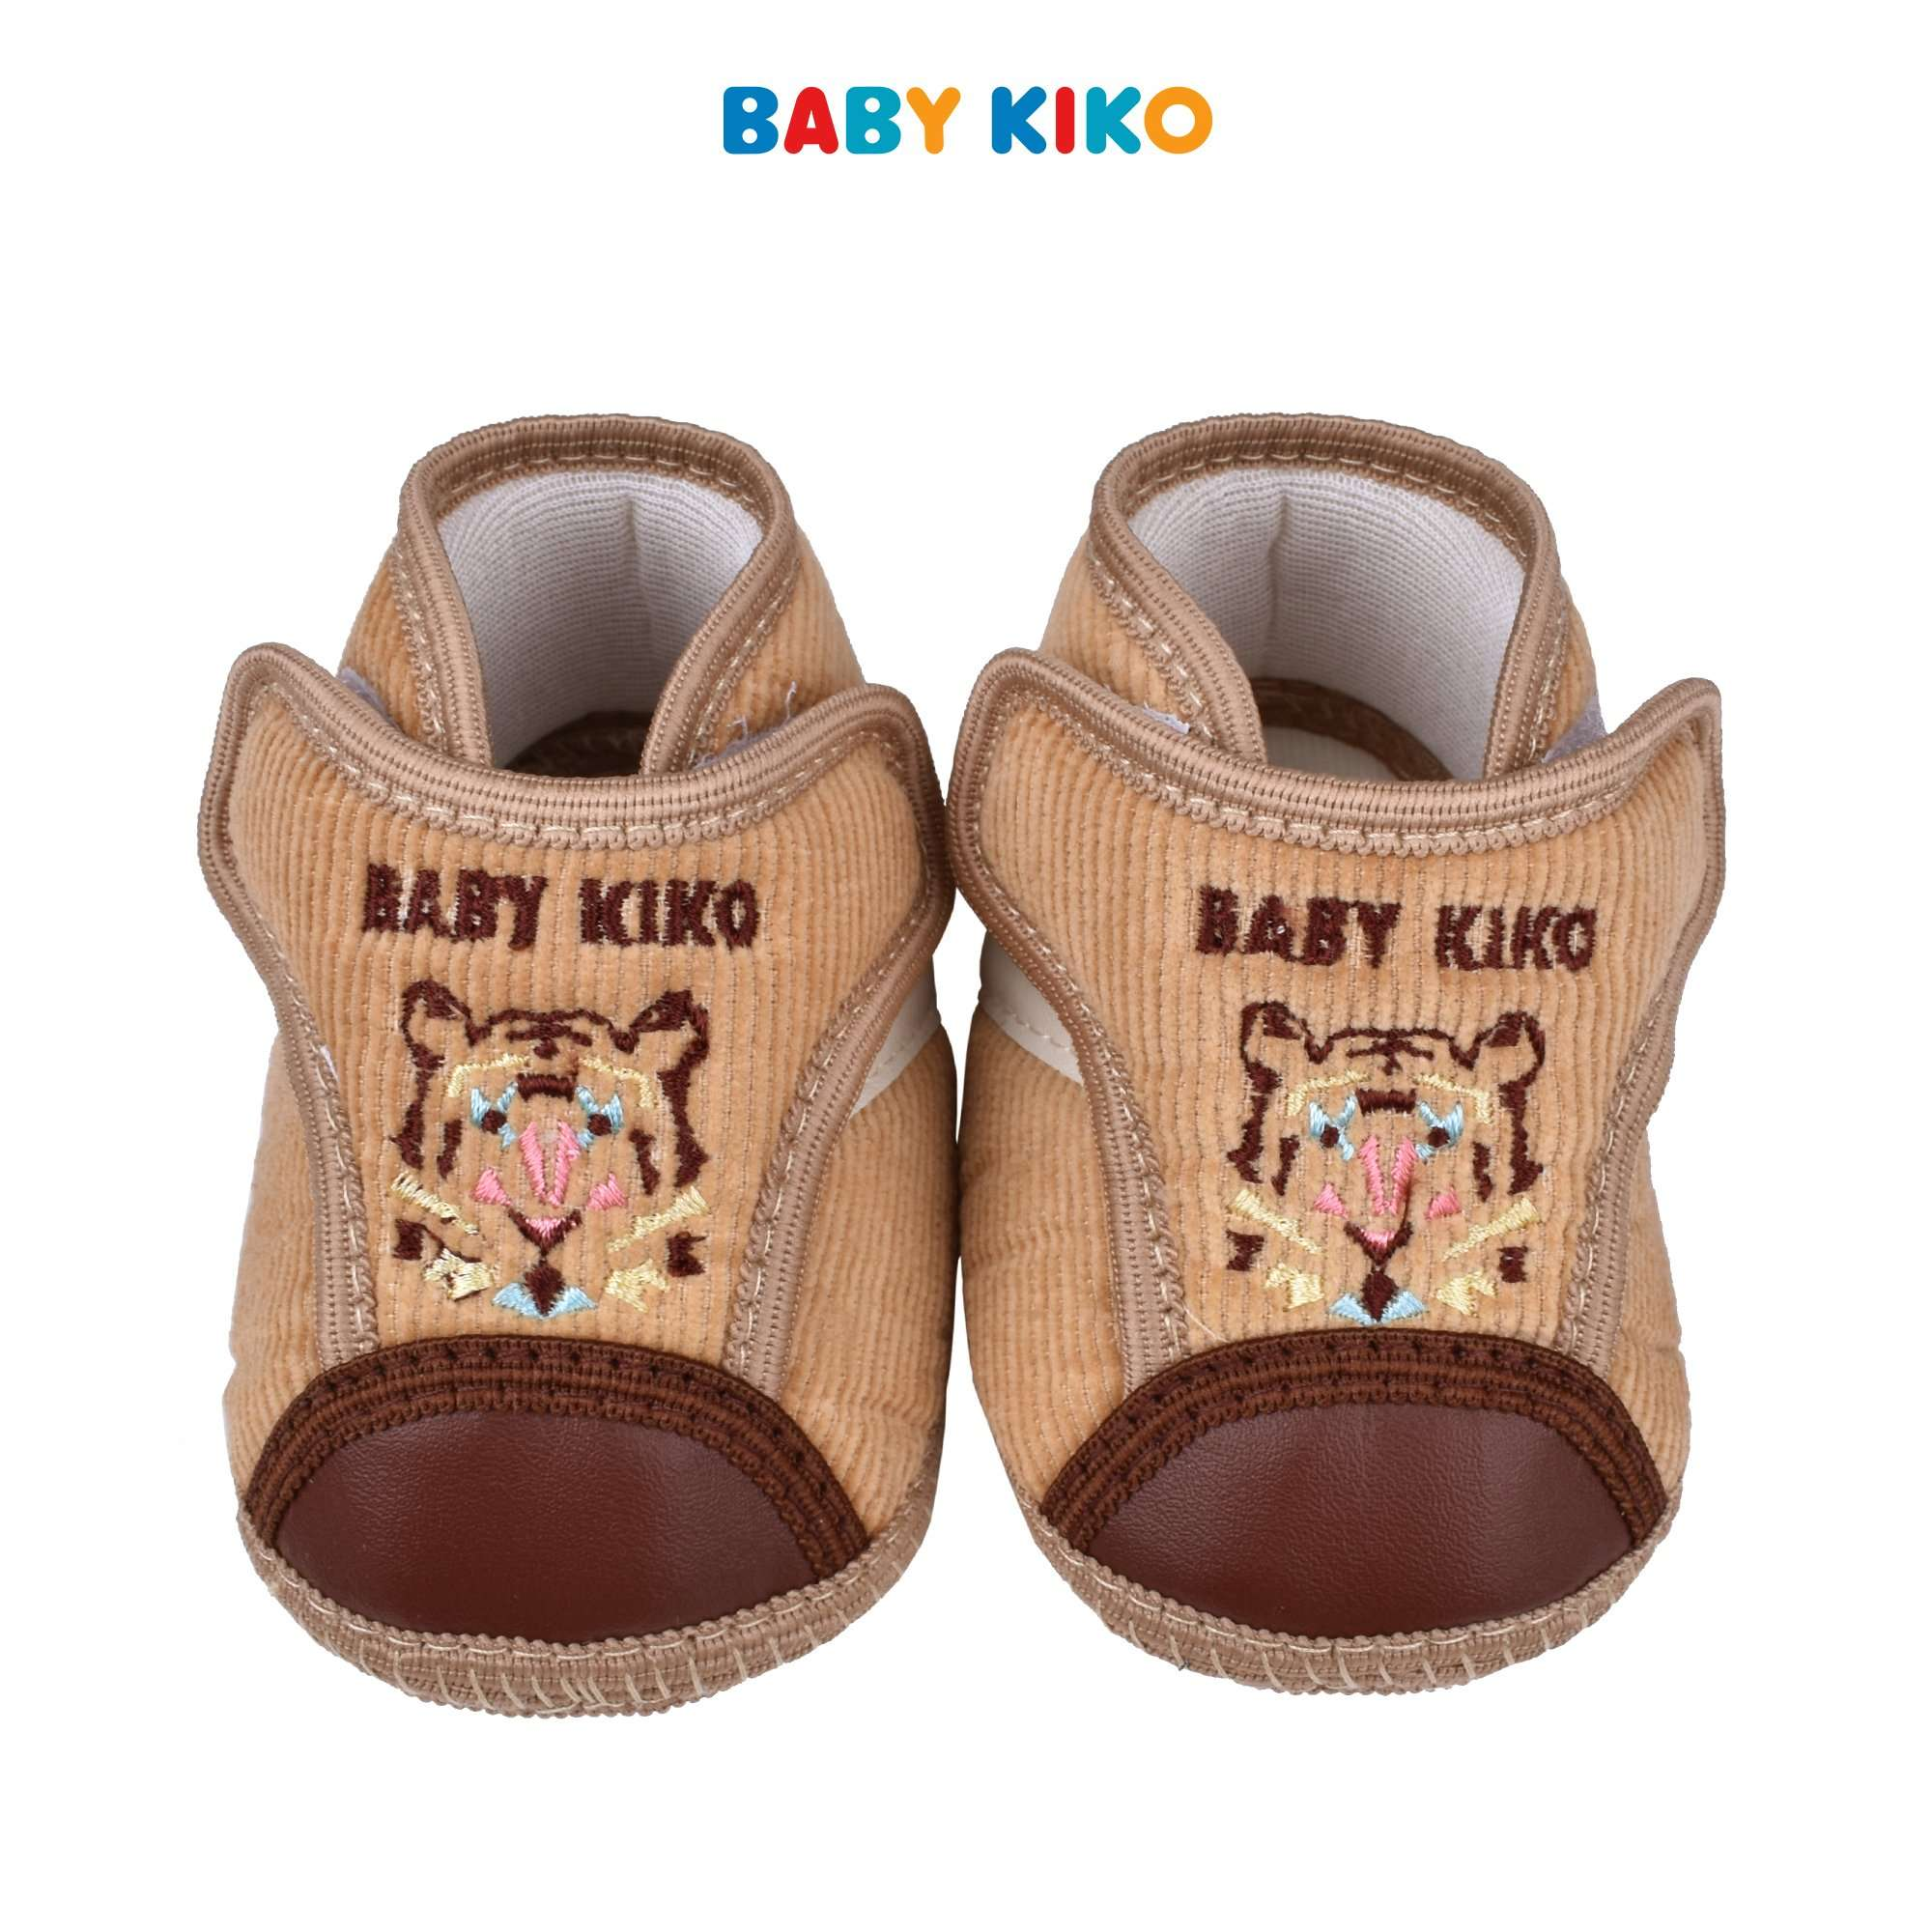 Baby KIKO Baby Boy Textiles Shoes- Khaki 310120-506 : Buy Baby KIKO online at CMG.MY